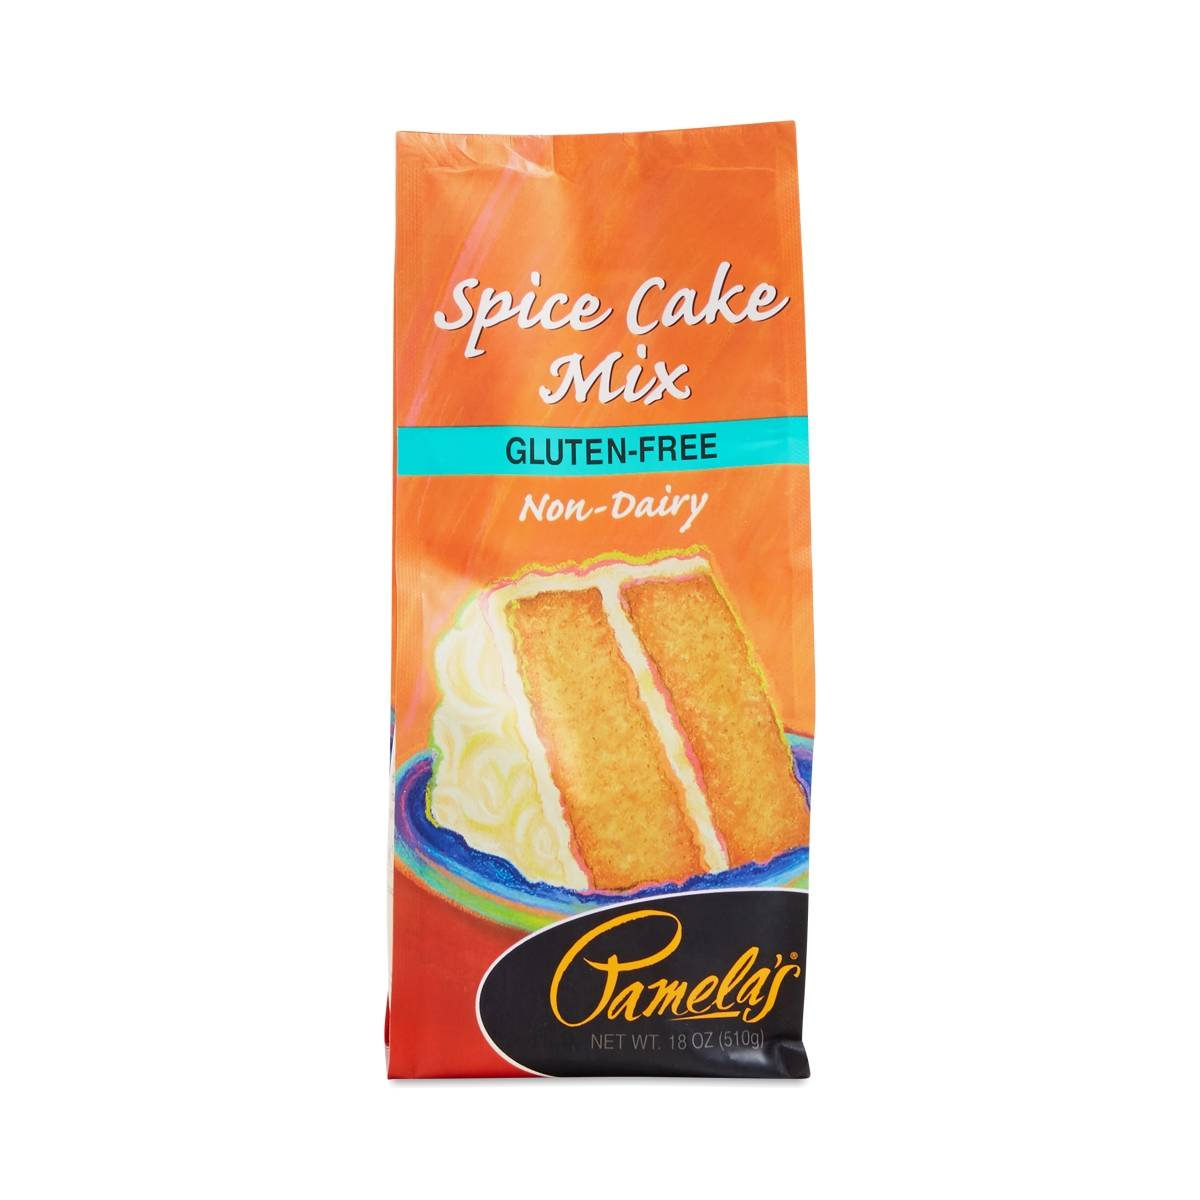 Best Store Bought Gluten Free Cake Mix